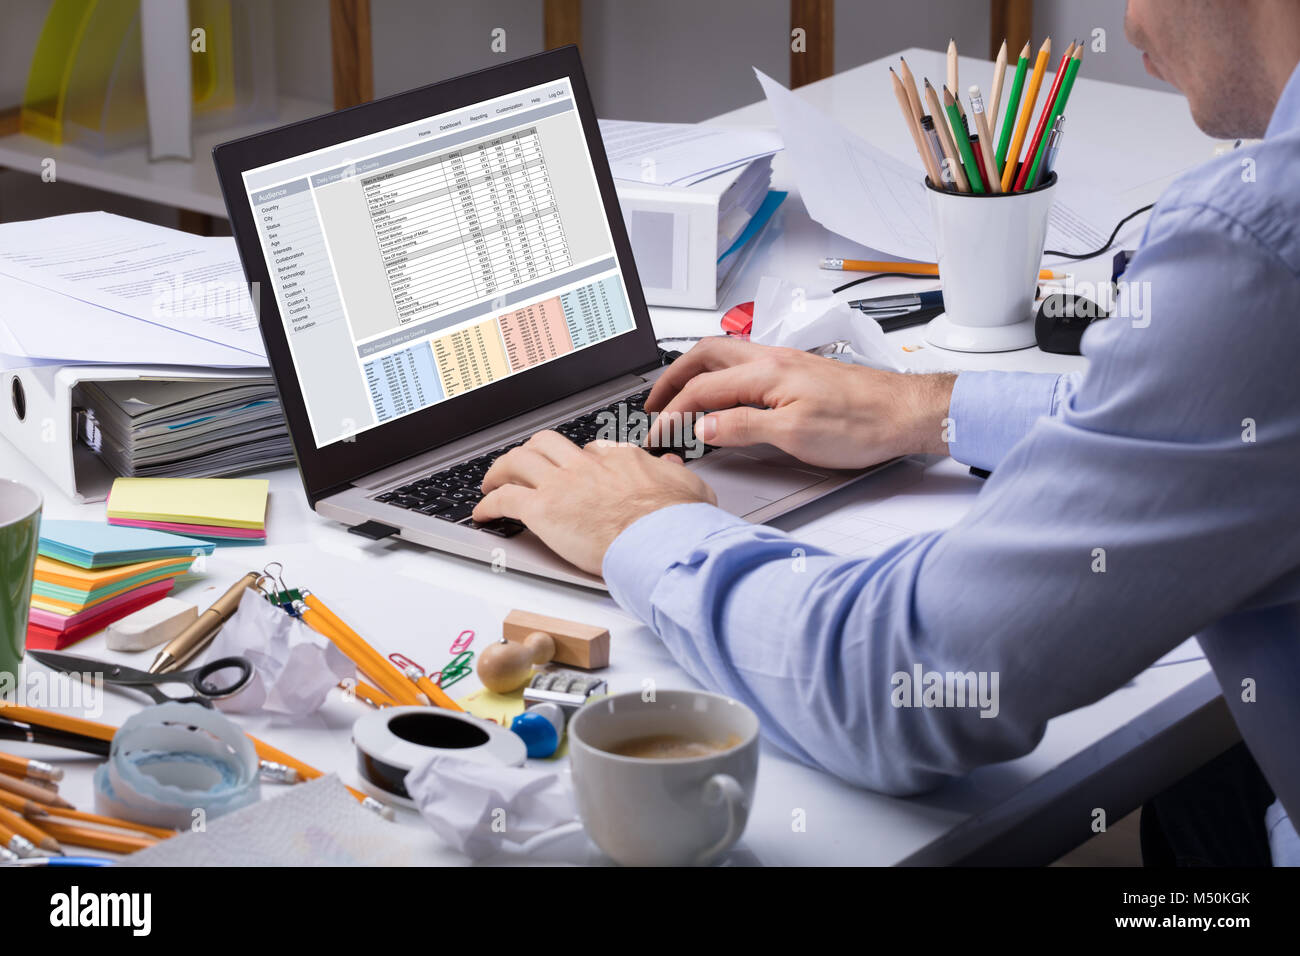 Close-up Of Businessman Using Laptop Over The Messy Desk At Workplace In The Office - Stock Image